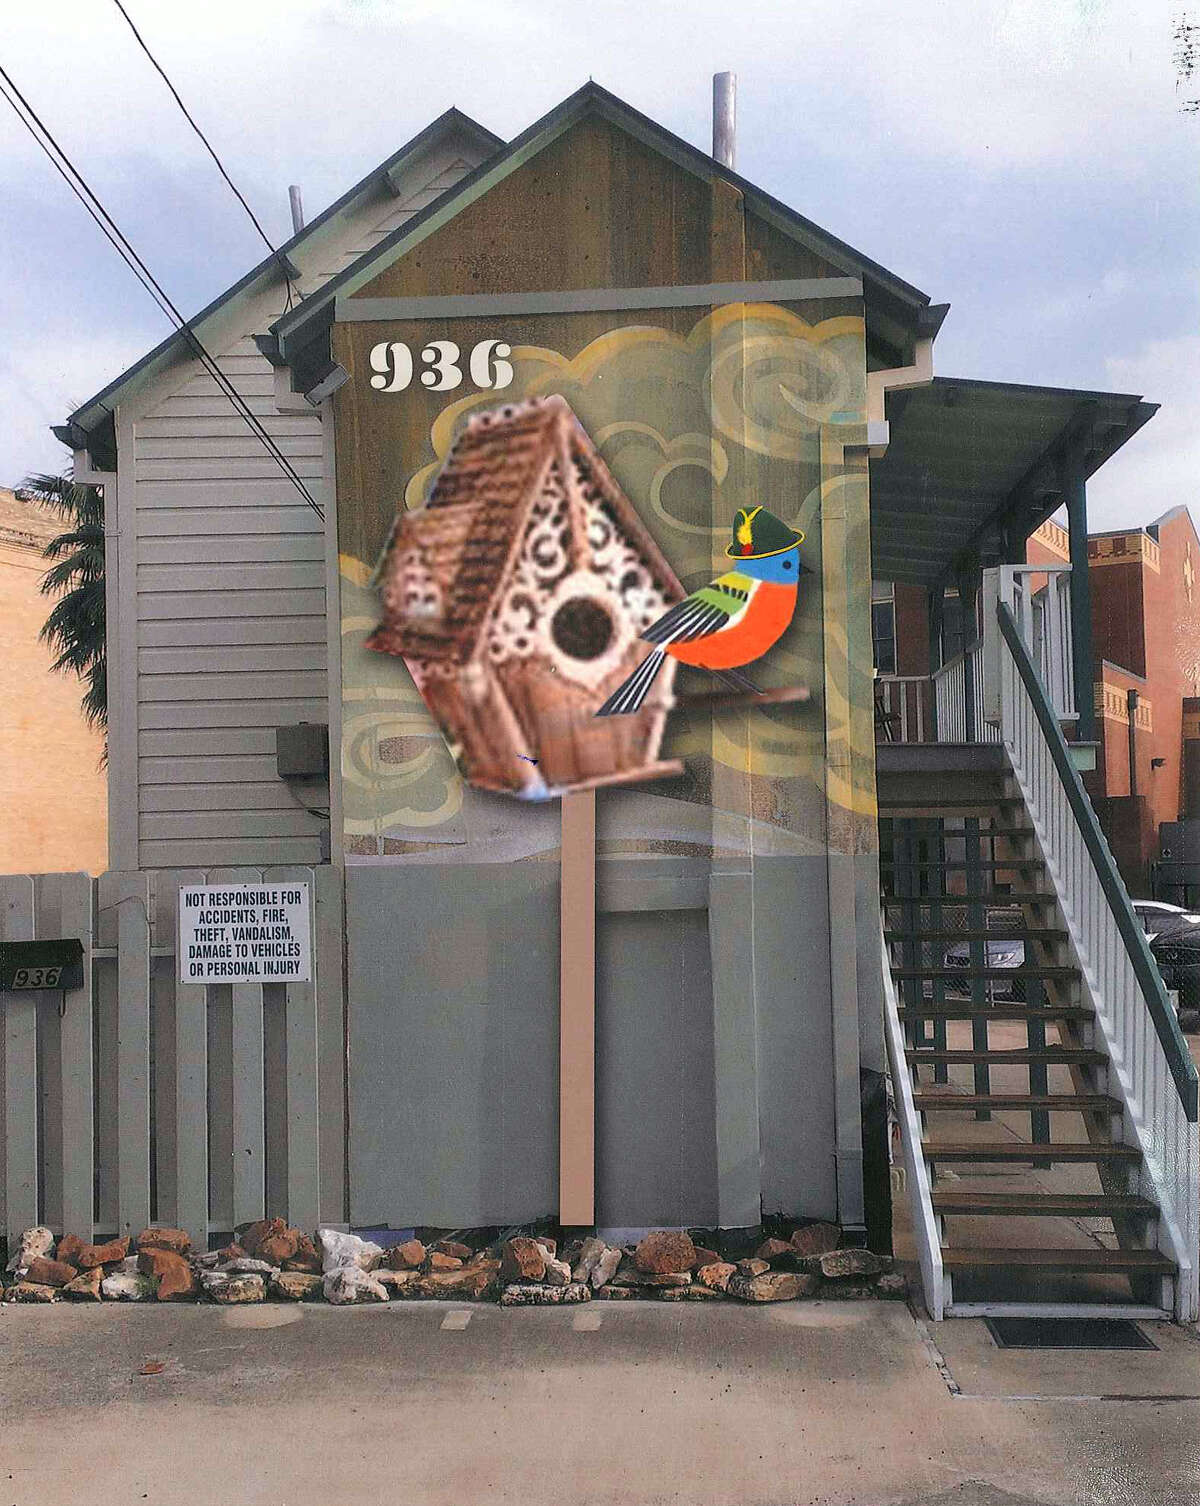 Leaders of the King William Association supported a version of the mural by artist Robert Tatum that depicted a bird with natural proportions, wearing a small Bavarian hat. The association initially opposed Tatum's concept of a chimp, and on Wednesday opposed his styled version of the bird. Tatum, who was not at the meeting of the Historic and Design Review Commission, said he's going to abandon the mural project.